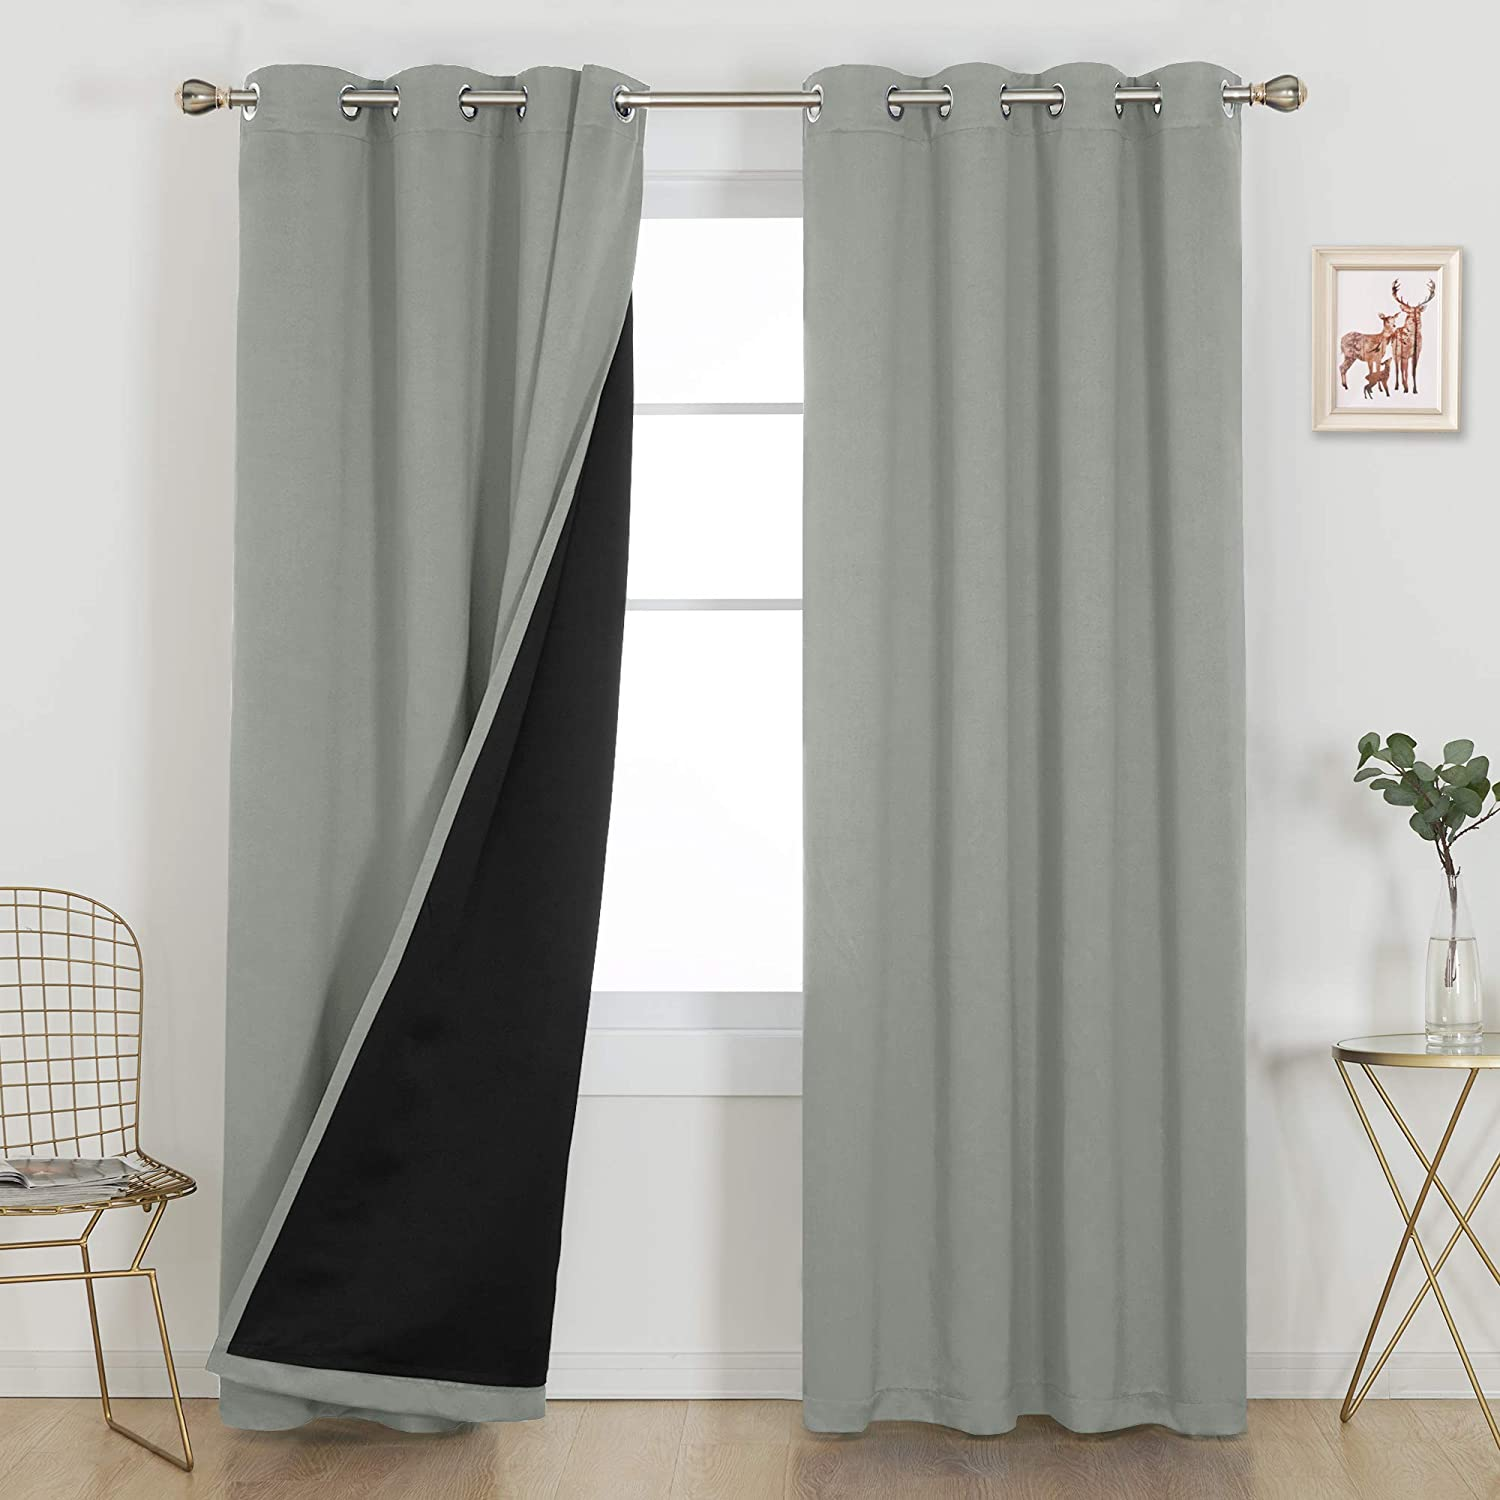 Deconovo Ranking TOP3 100% Blackout Curtains 84 Dou Japan Maker New Large Inches Windows Long